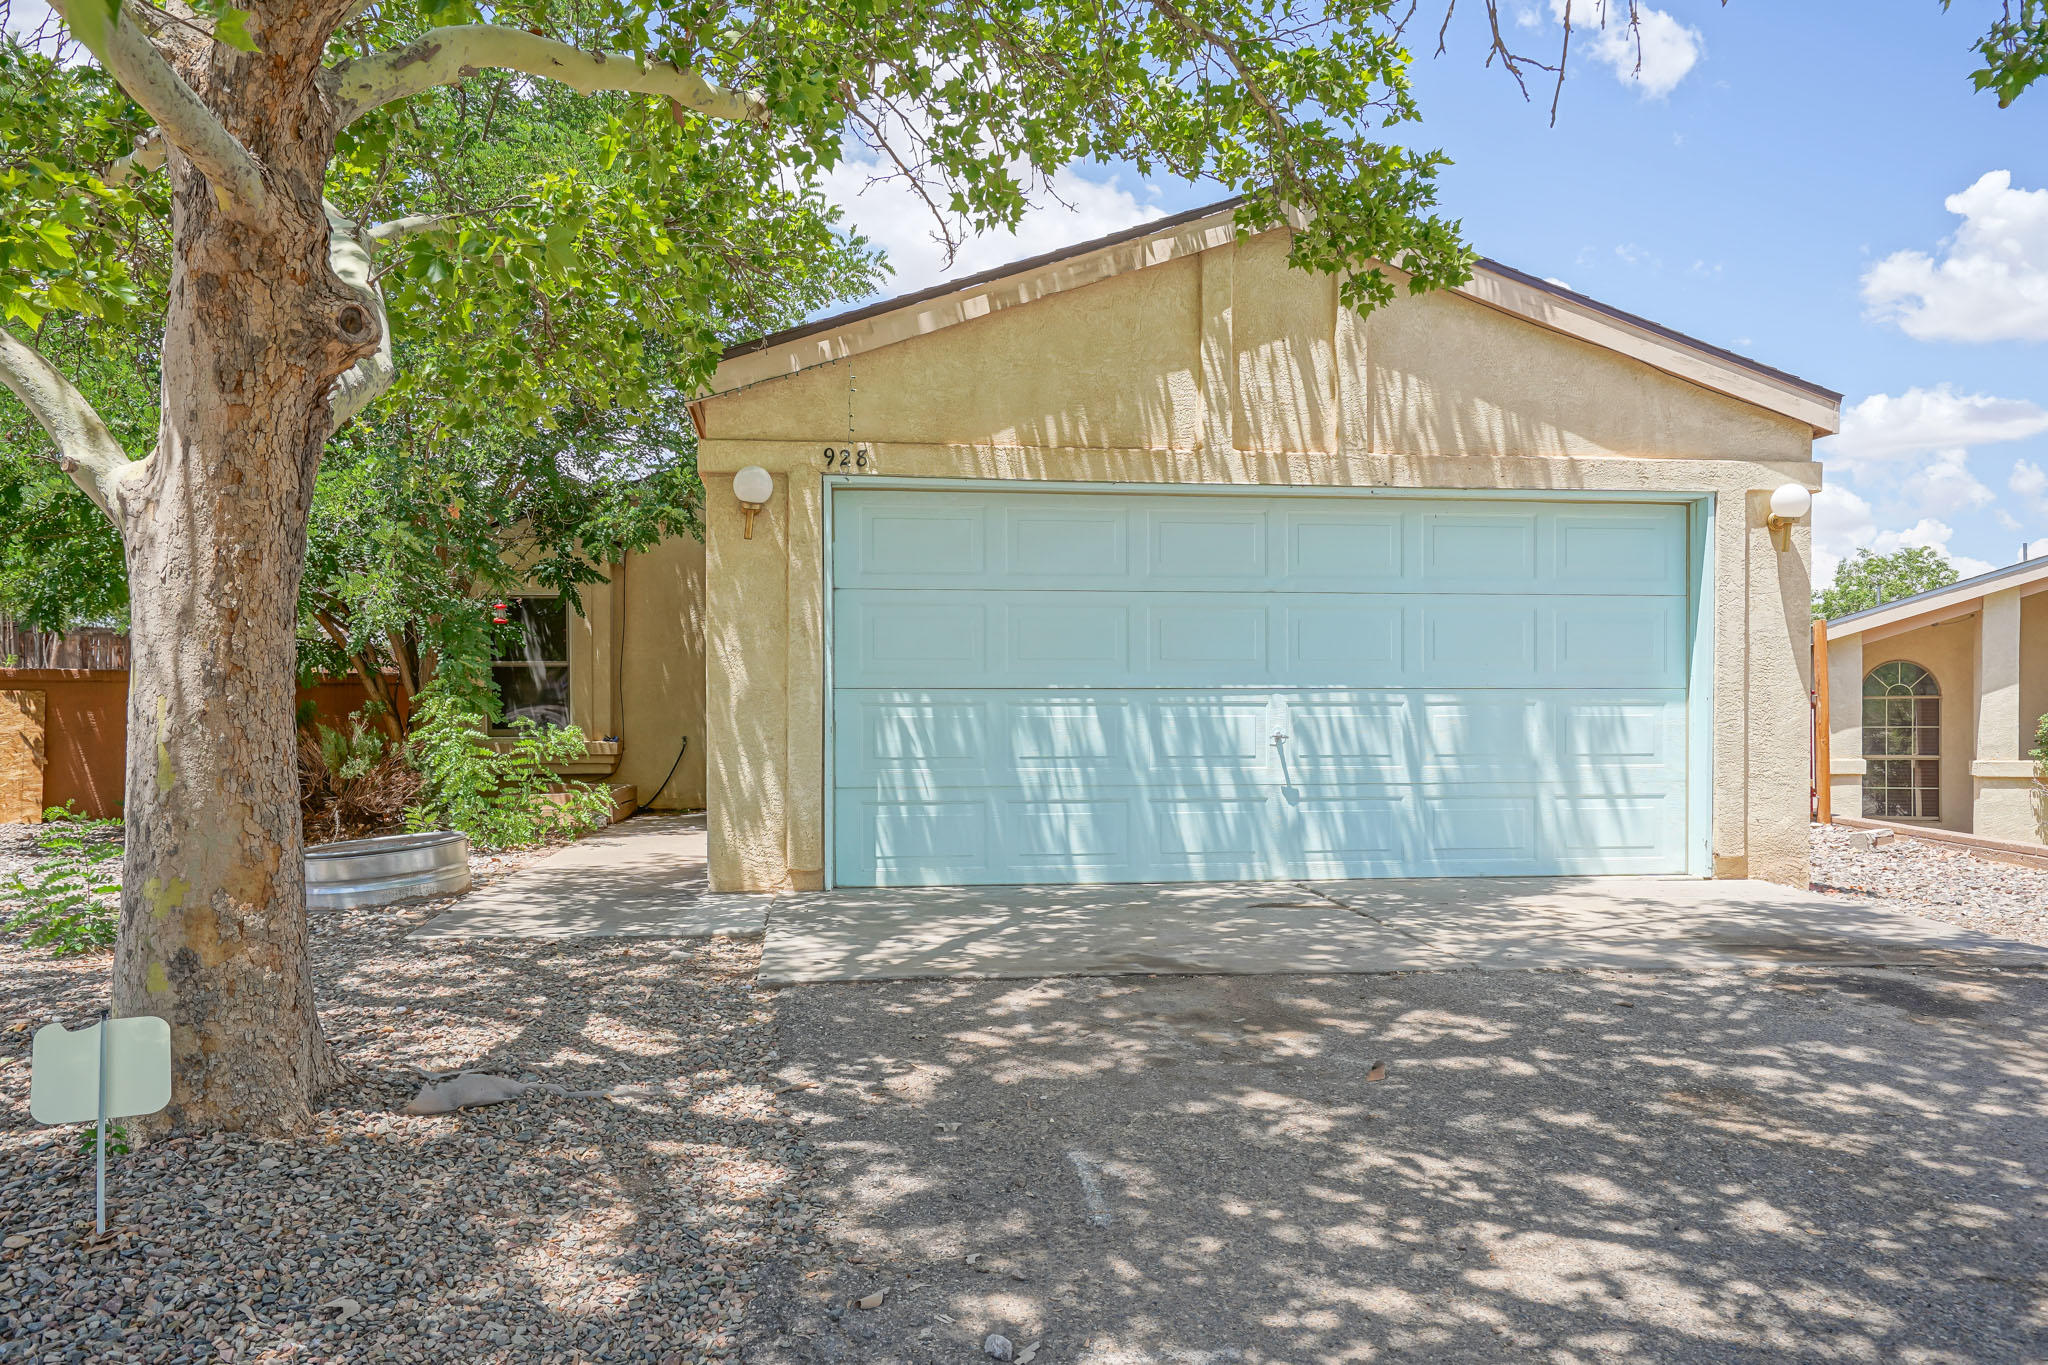 Cute as a button home!  This charmer is ready to move in and call home.   Newer roof, windows, refridgerated air, and replaced poly. Huge patio cover in the backyard to keep cool in the shade.  This little gem wont last long!